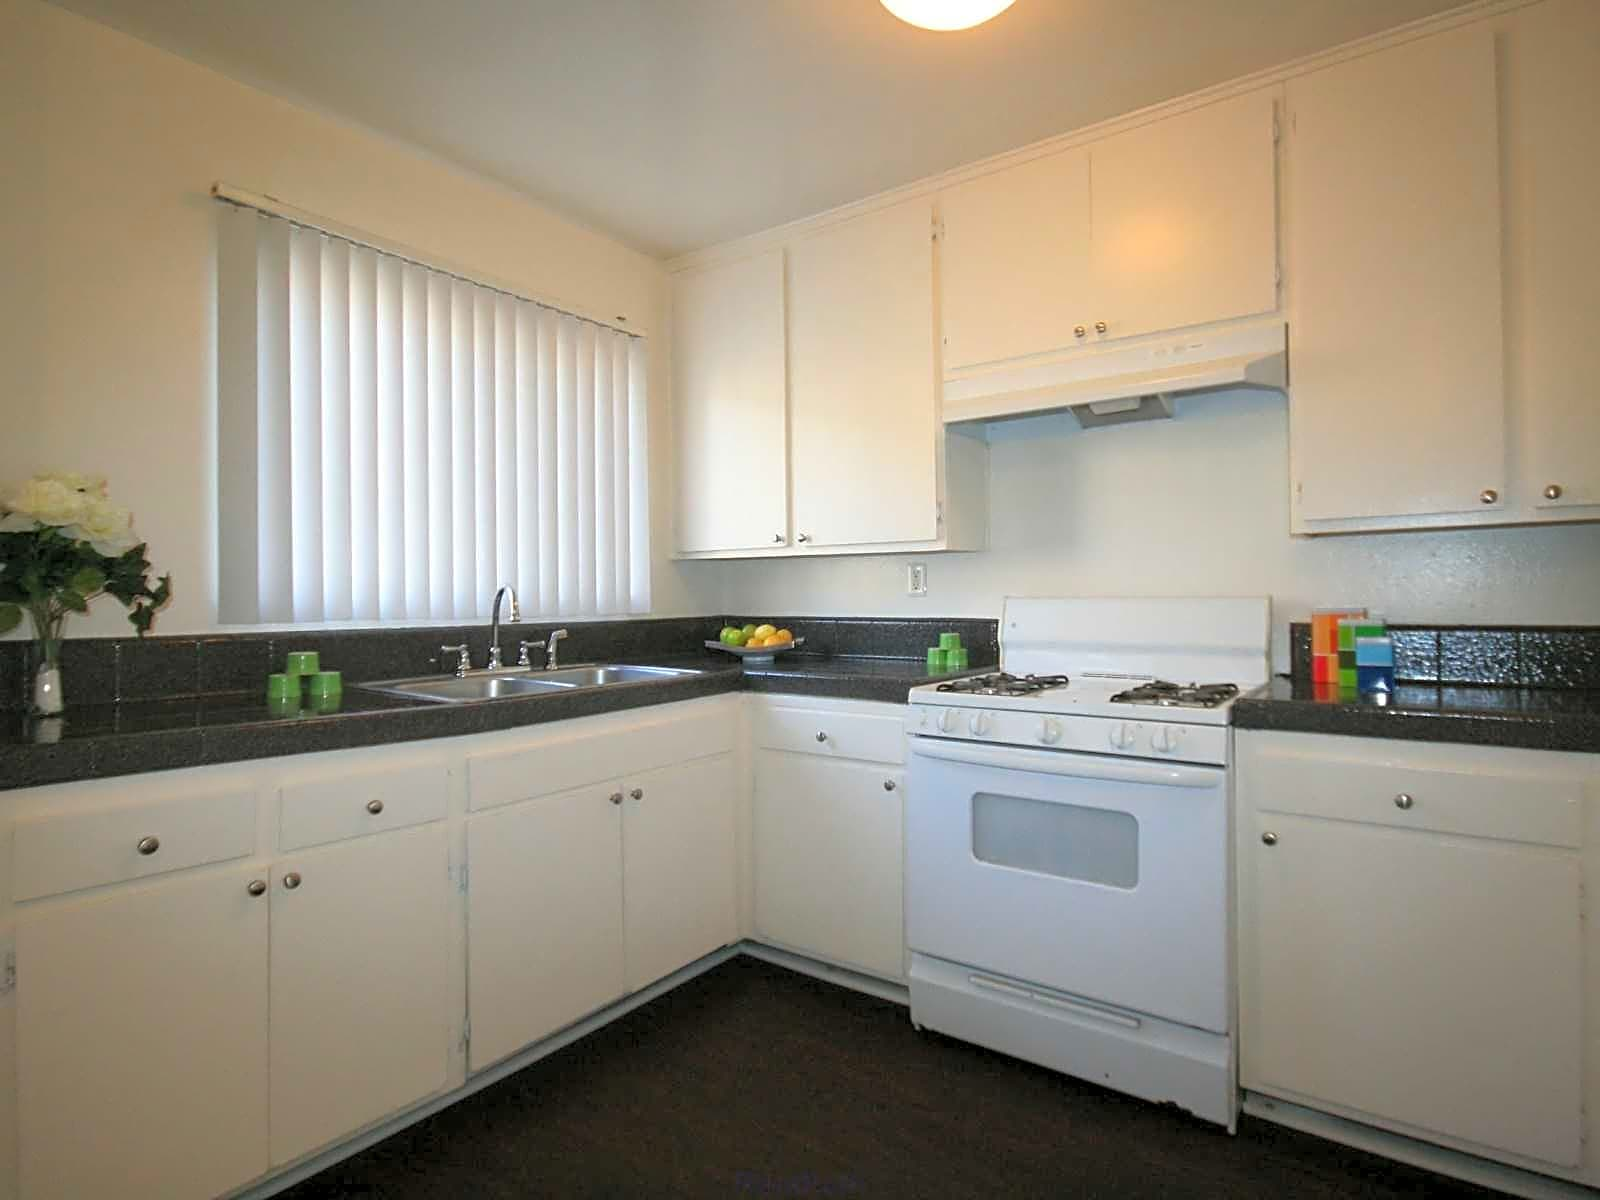 Photo: Oxnard Apartment for Rent - $1615.00 / month; 3 Bd & 2 Ba